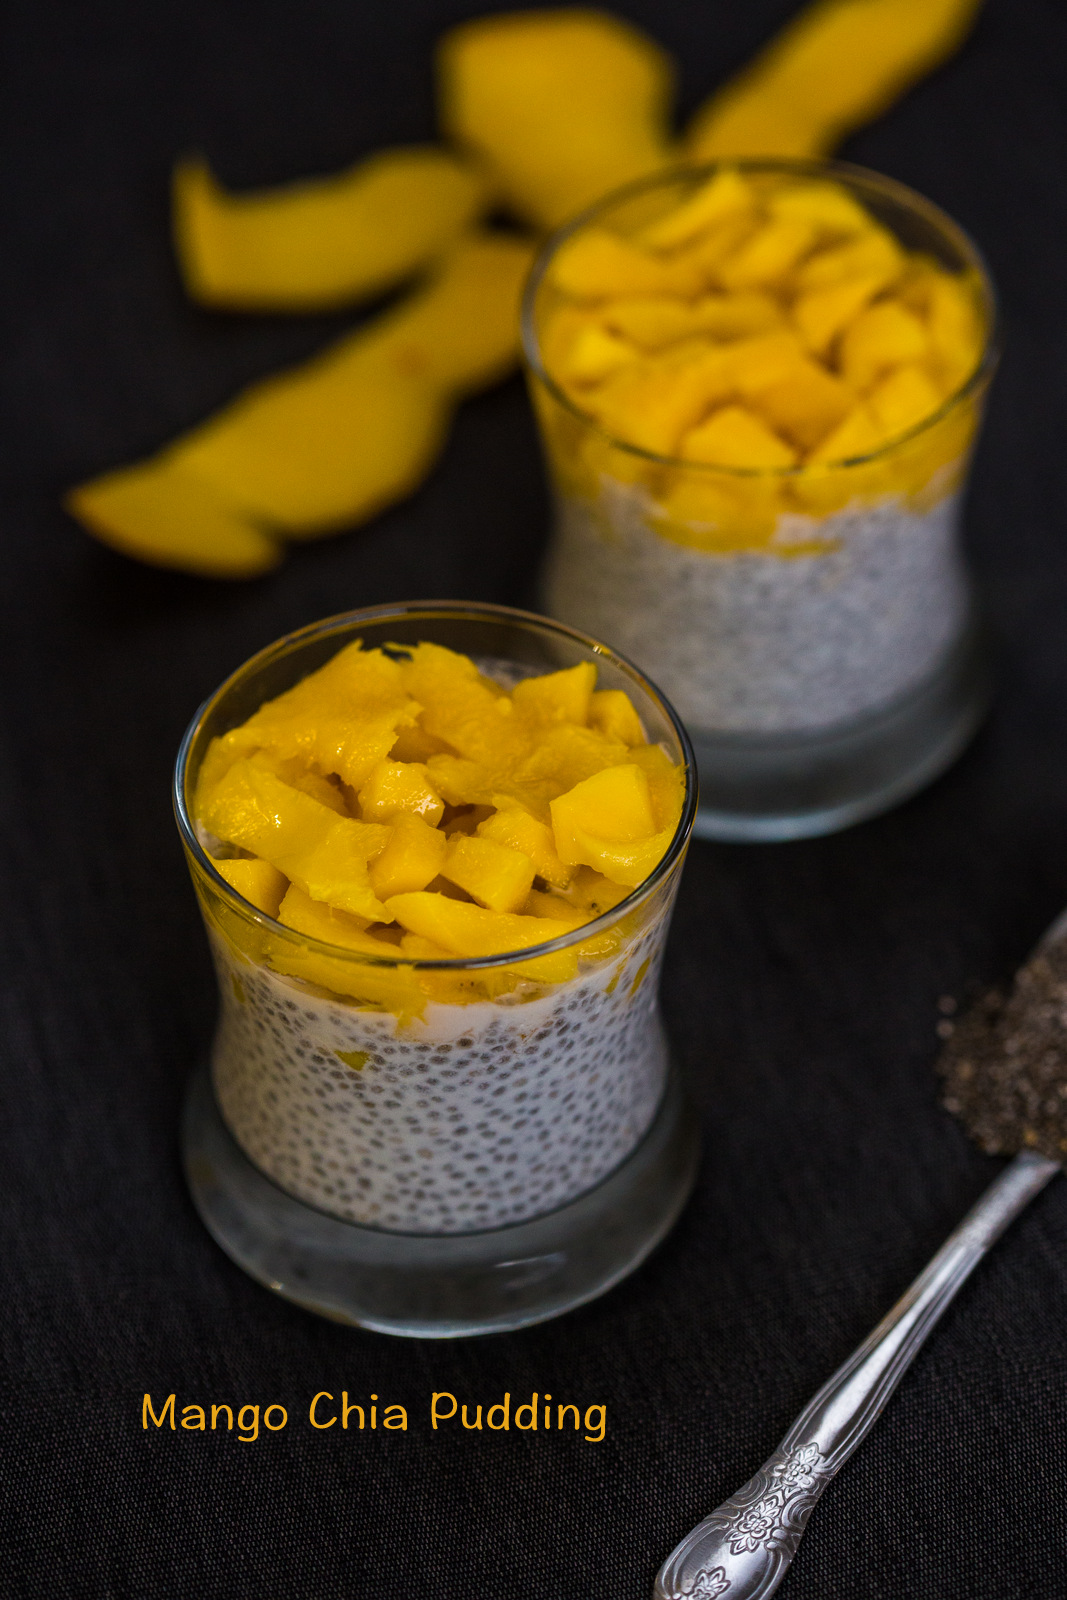 chia seeds, paleo diet, recipes, mango recipes, breakfast recipes, chia seeds recipes, paleo recipes, fruits, healthy recipes